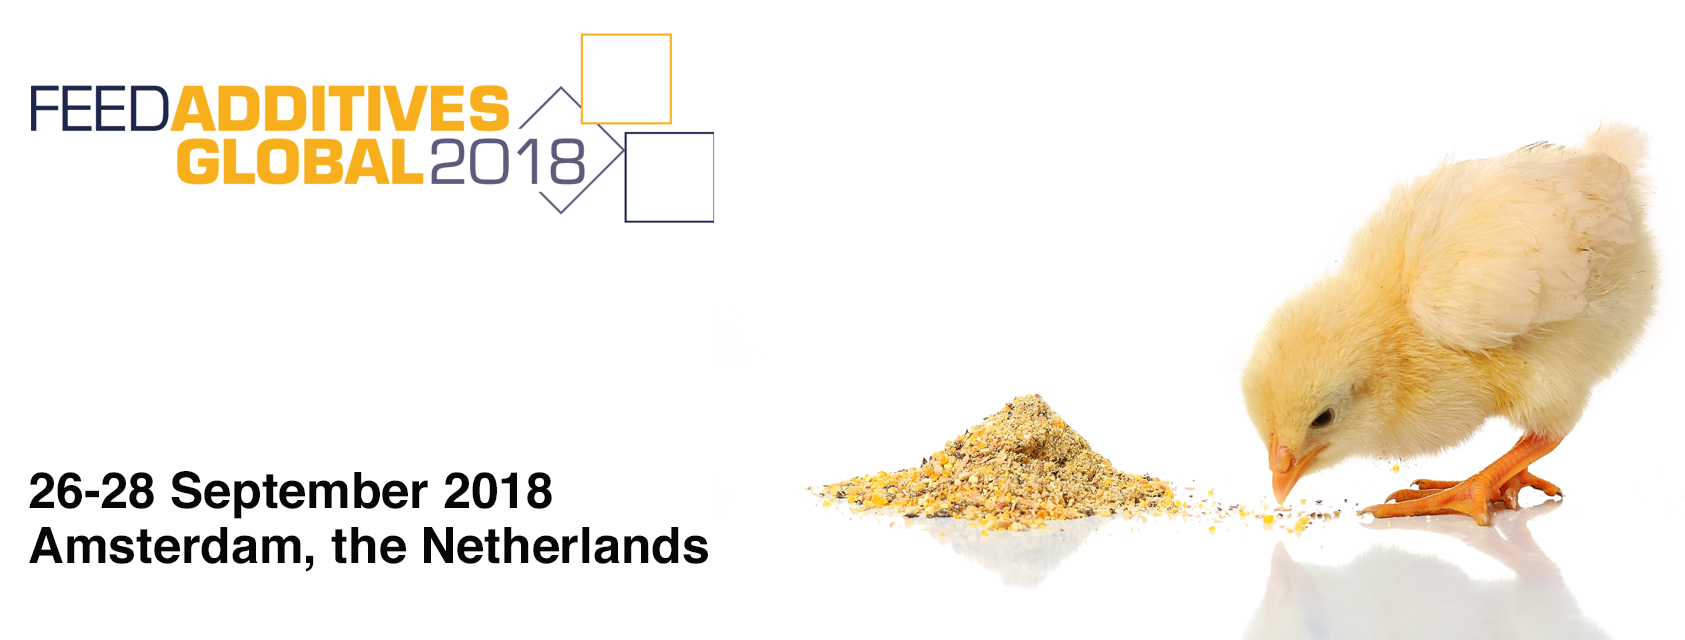 Feed Additives 2018 presented by FeedInfo News Service